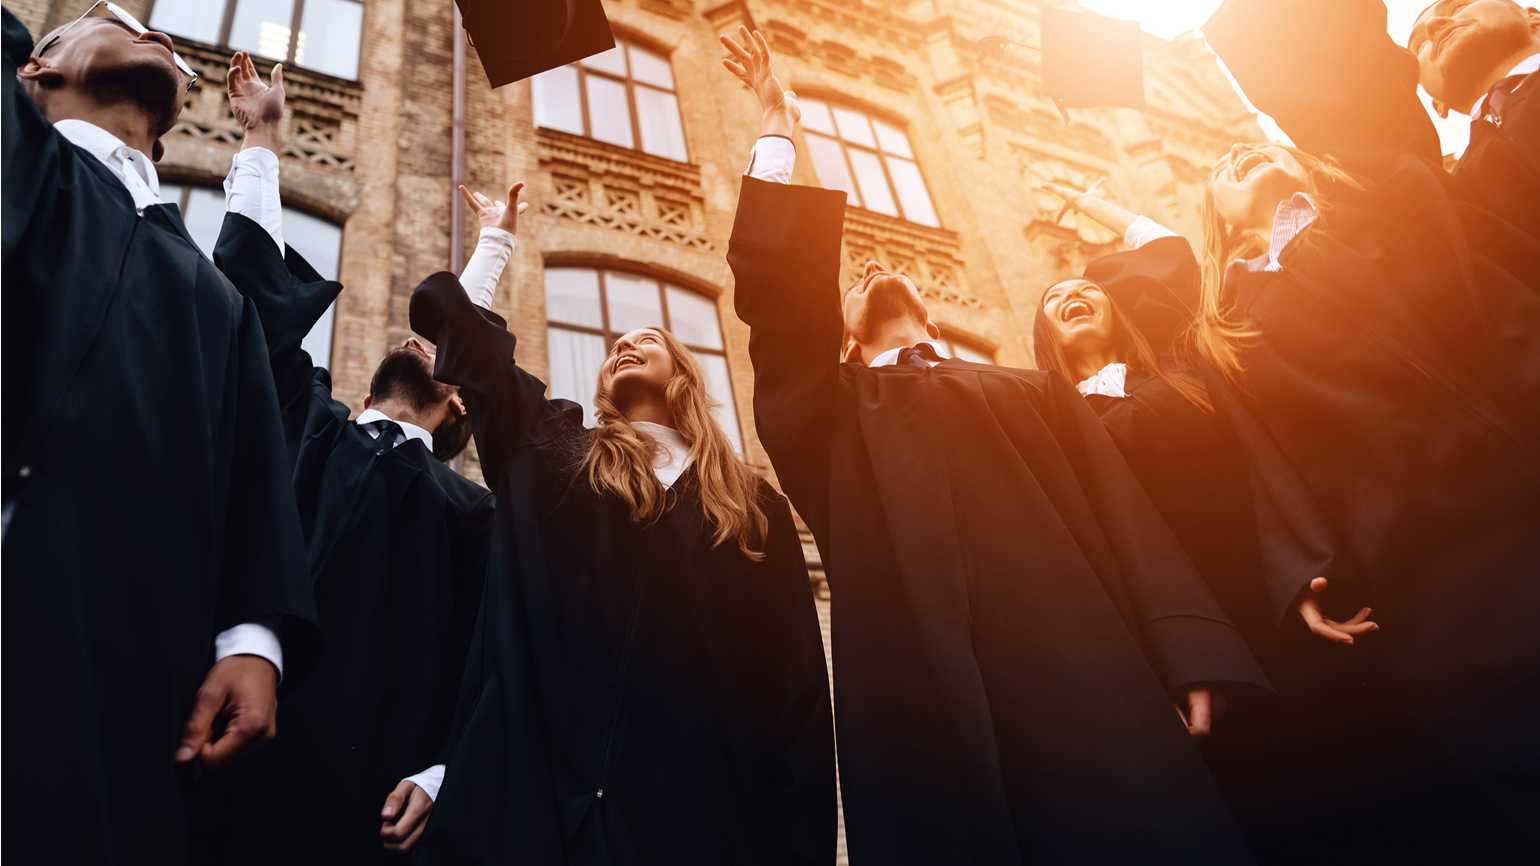 A group of graduates throwing their caps in the air.